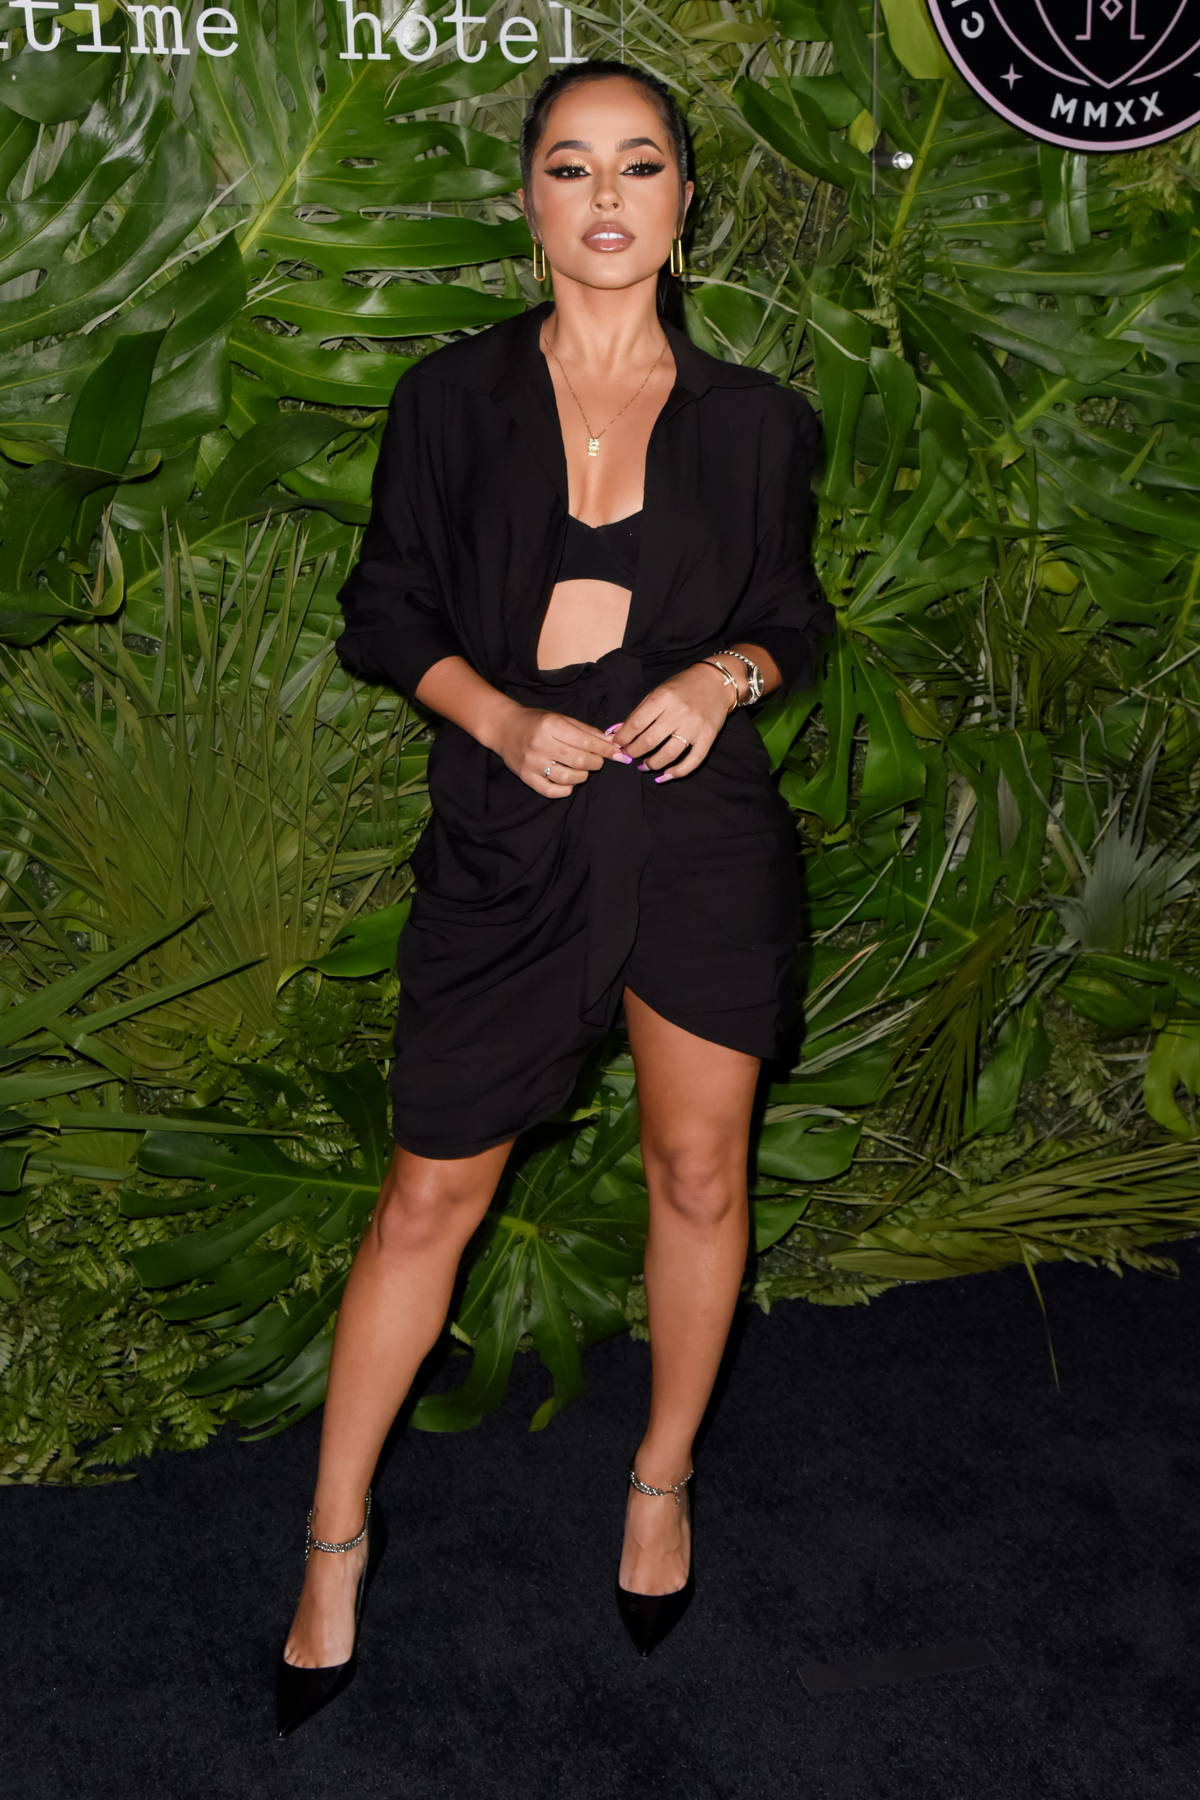 Becky G attends Inter Miami CF Season Opening Party at the Goodtime Hotel in Miami, Florida